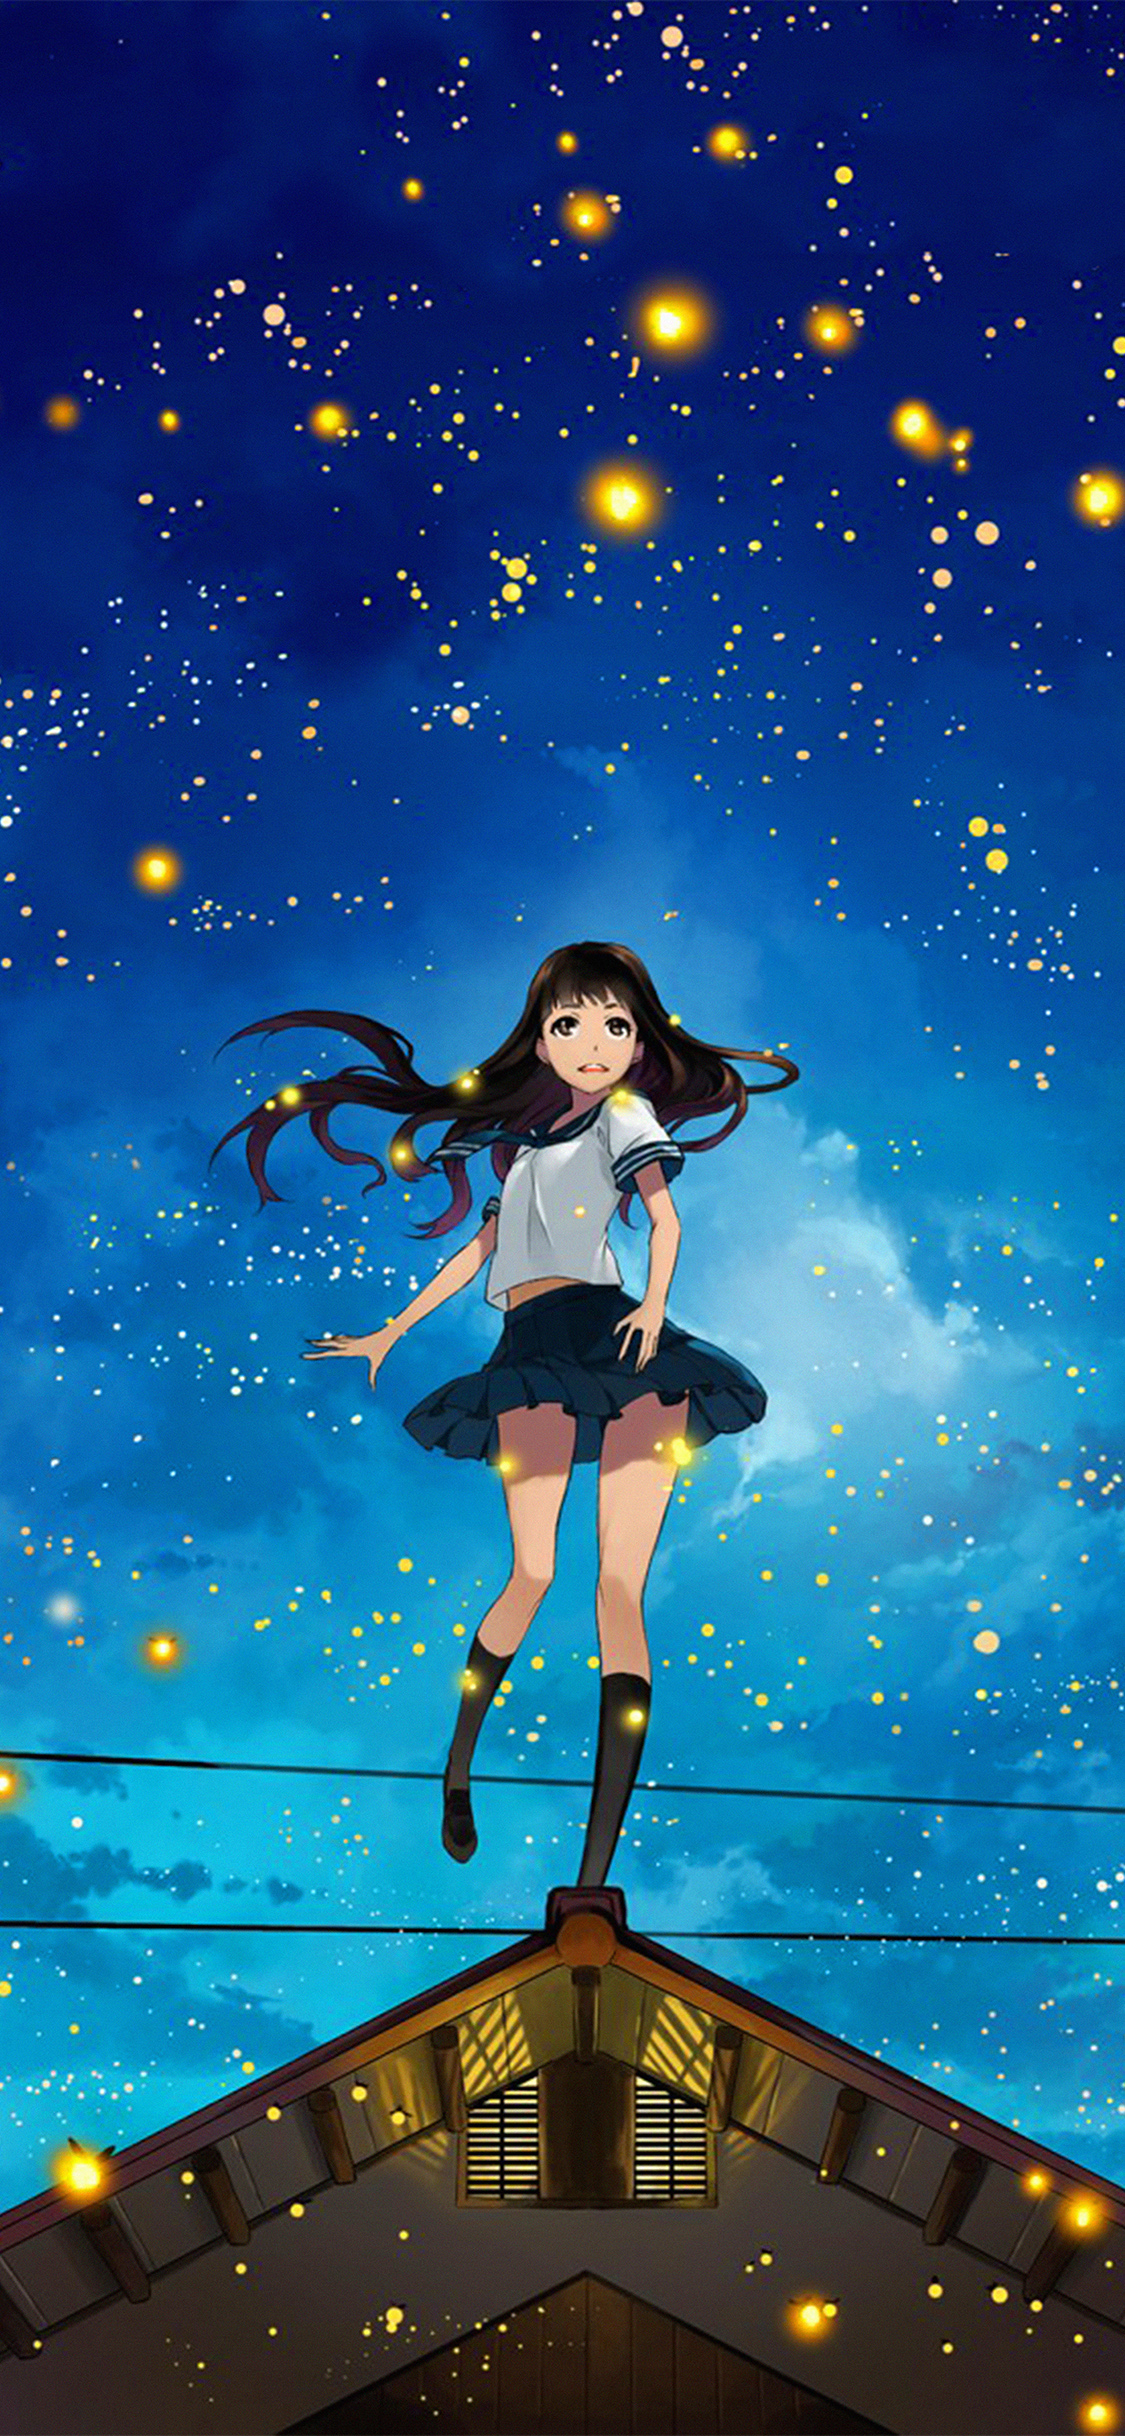 Iphonexpapers Com Iphone X Wallpaper Au46 Girl Anime Star Space